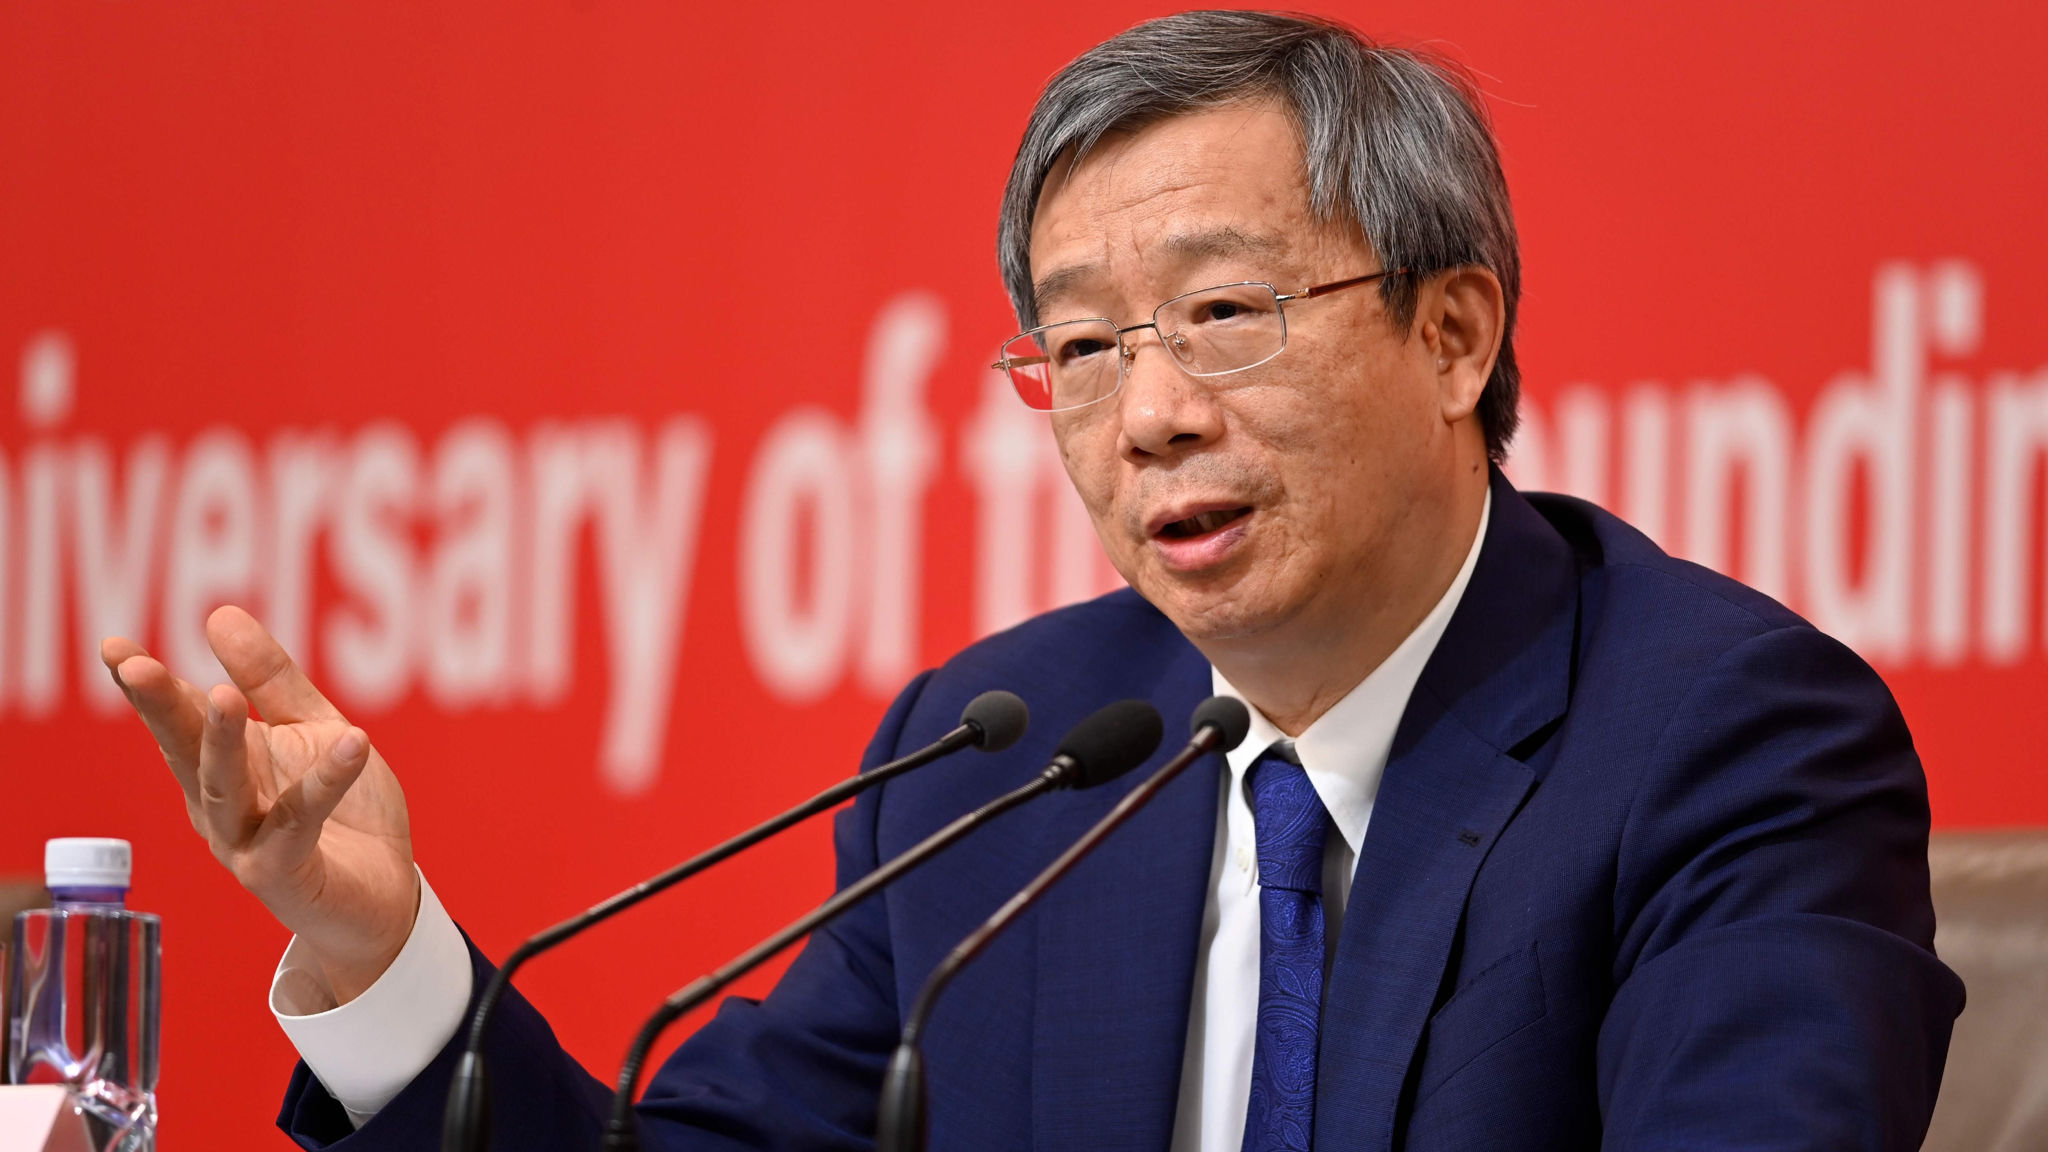 China central bank head warns on strength of regional lenders